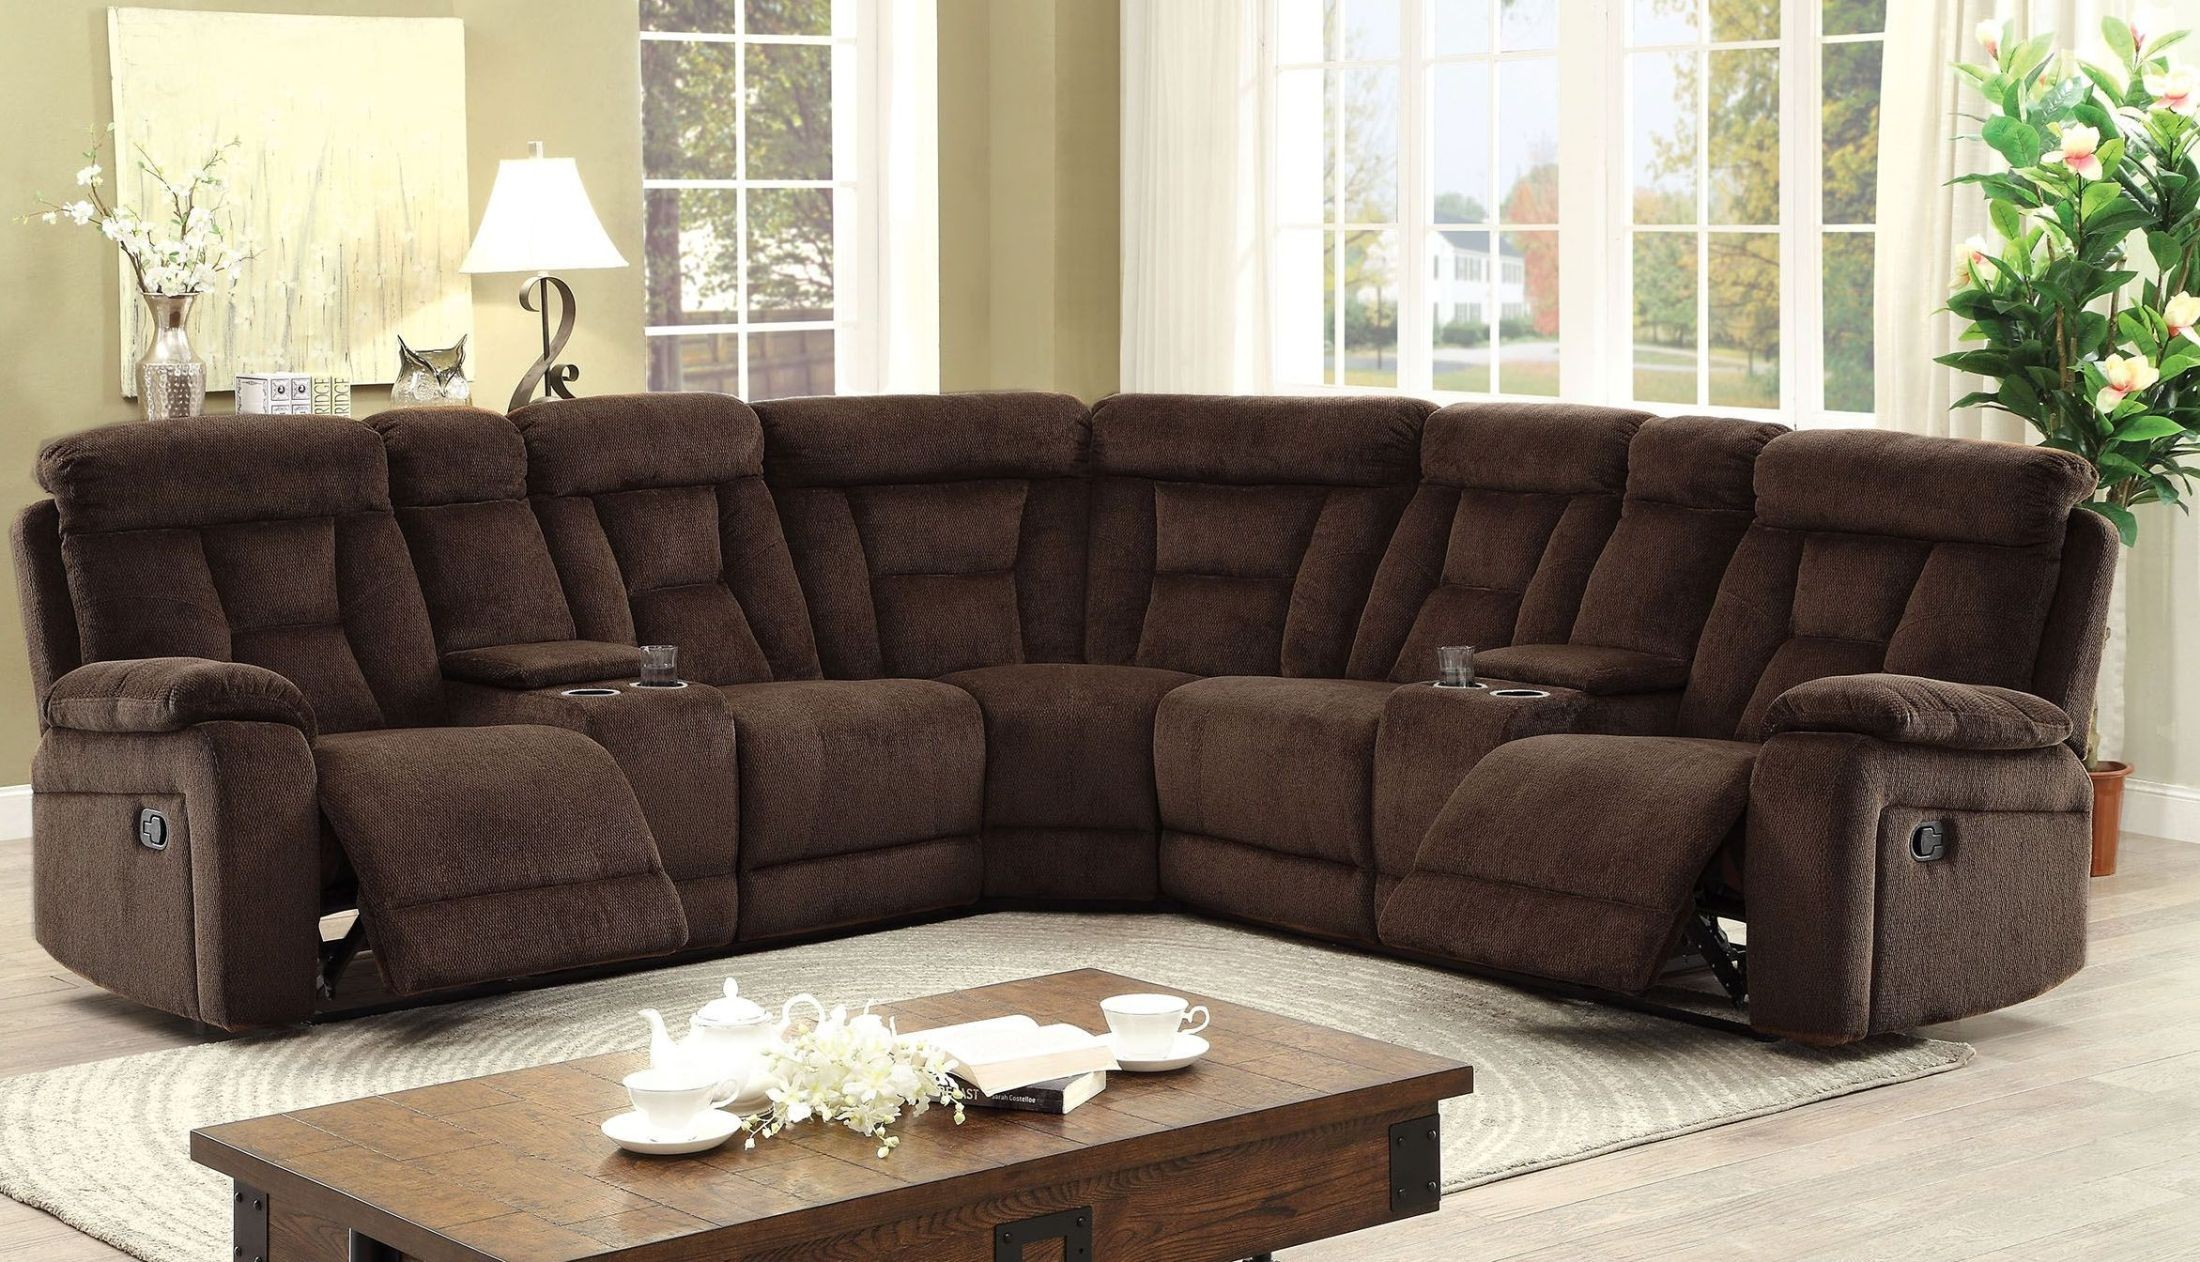 Maybell Brown Reclining Sectional from Furniture of America